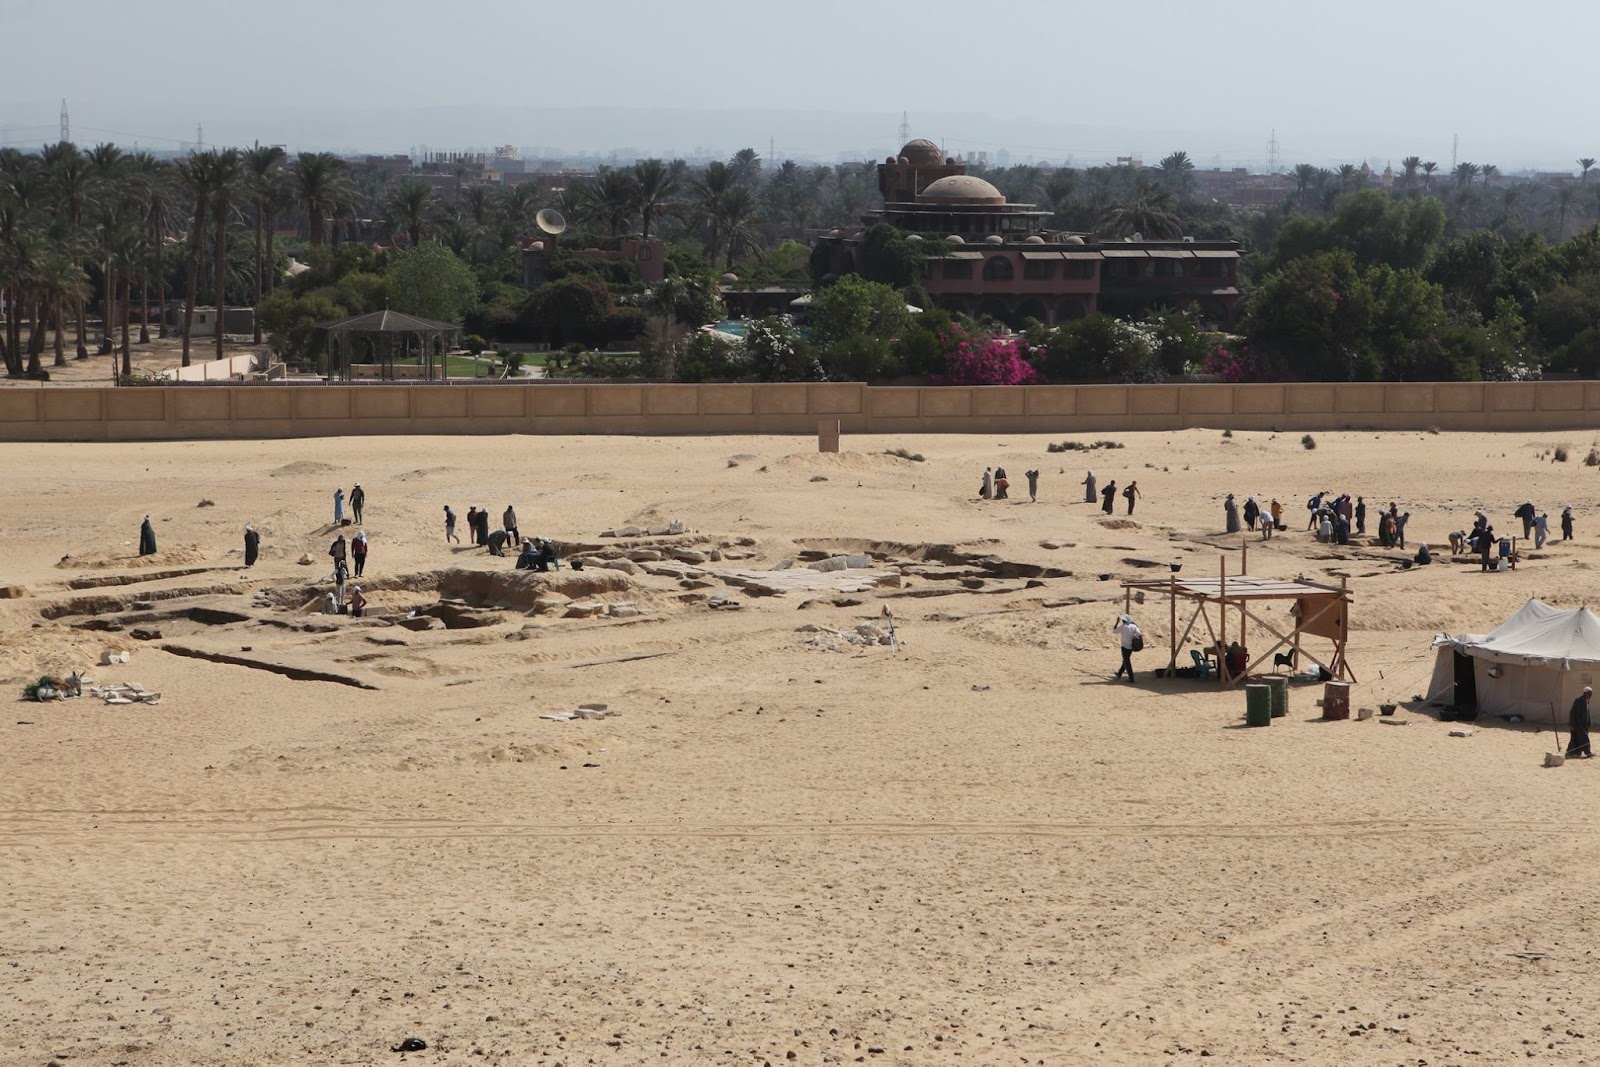 Temple of Ramses II discovered in Giza